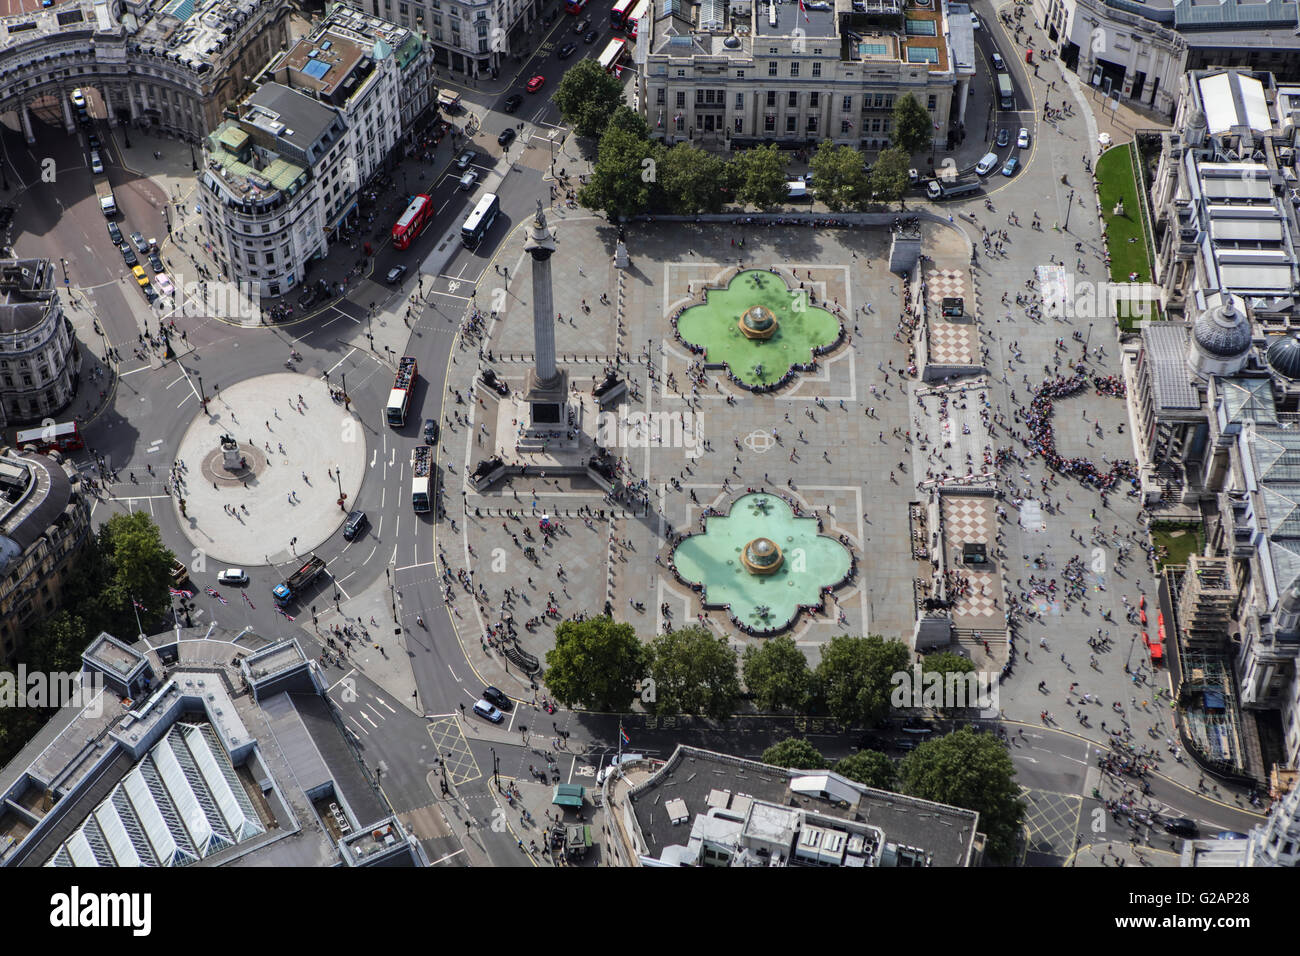 An aerial view of Trafalgar Square in London - Stock Image